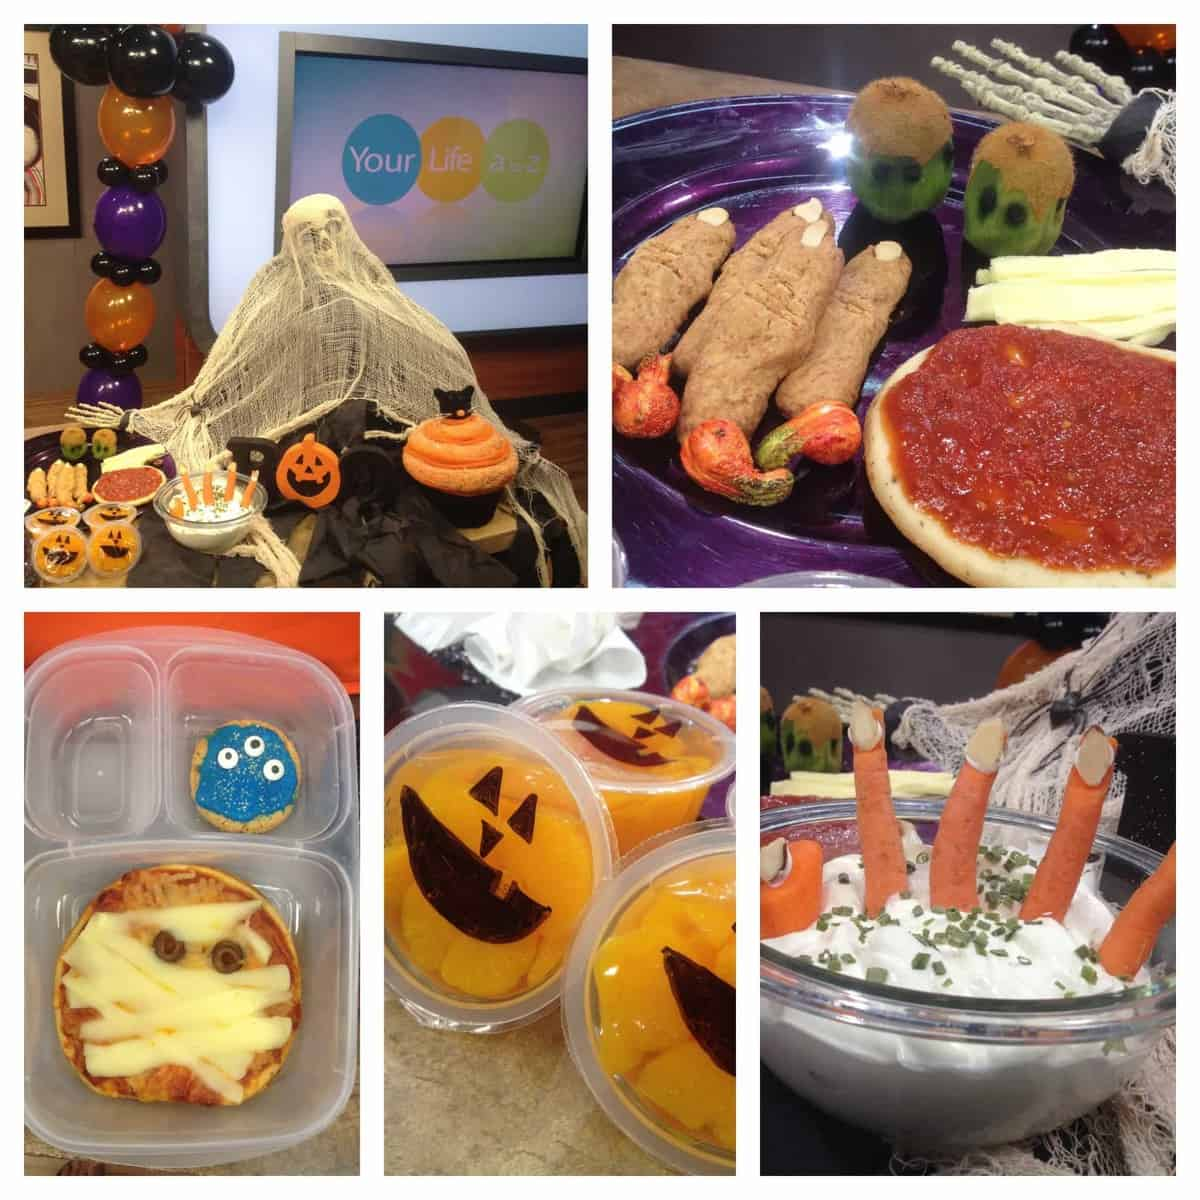 Easy gluten-free halloween ideas that won't keep you in the kitchen all day